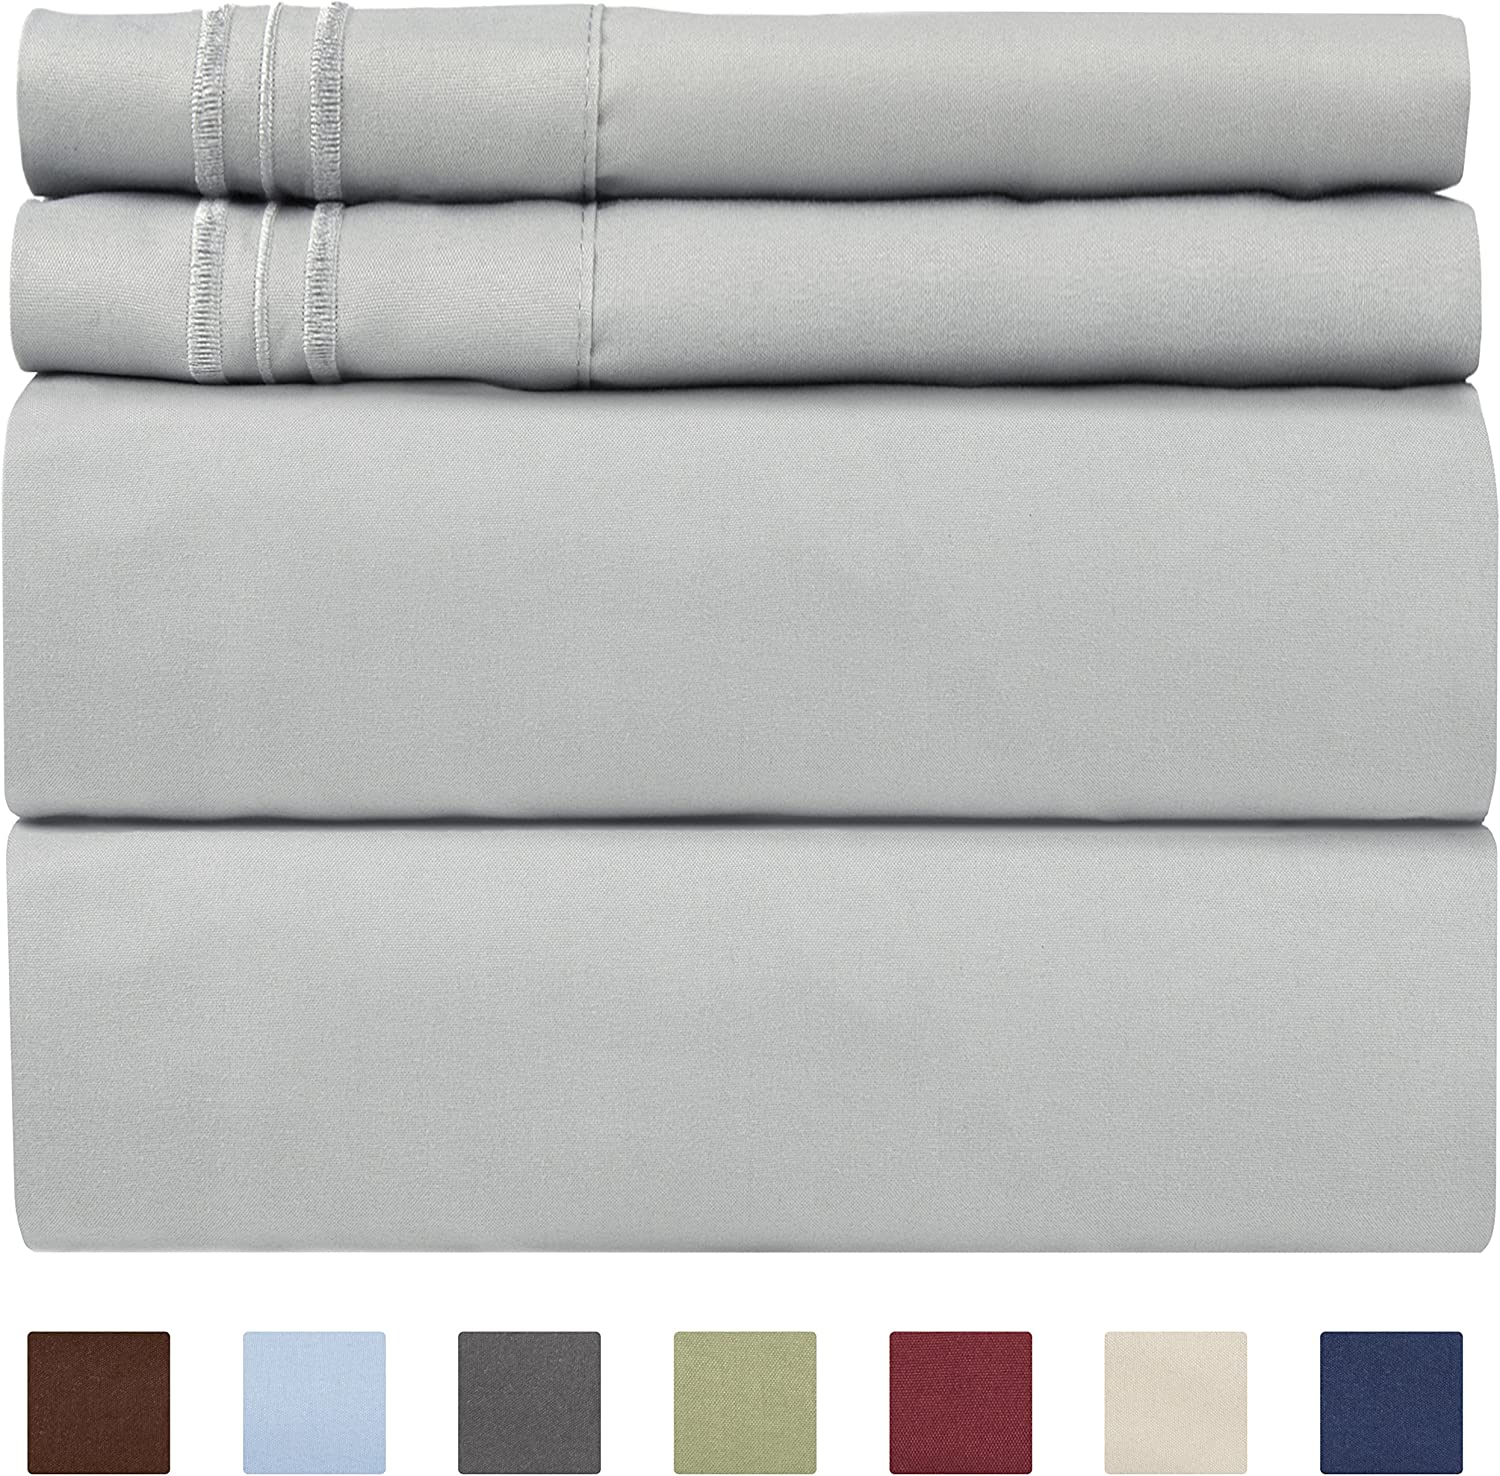 Twin XL Sheet Set - 4 Piece Sheets - Dorm Room Bed Sheets - Hotel Luxury Bed Sheets - Extra Soft - Deep Bed Sheets Pockets - Easy Fit - Breathable & Cooling Touch - Twin XL Sheets for Twin XL Mattress